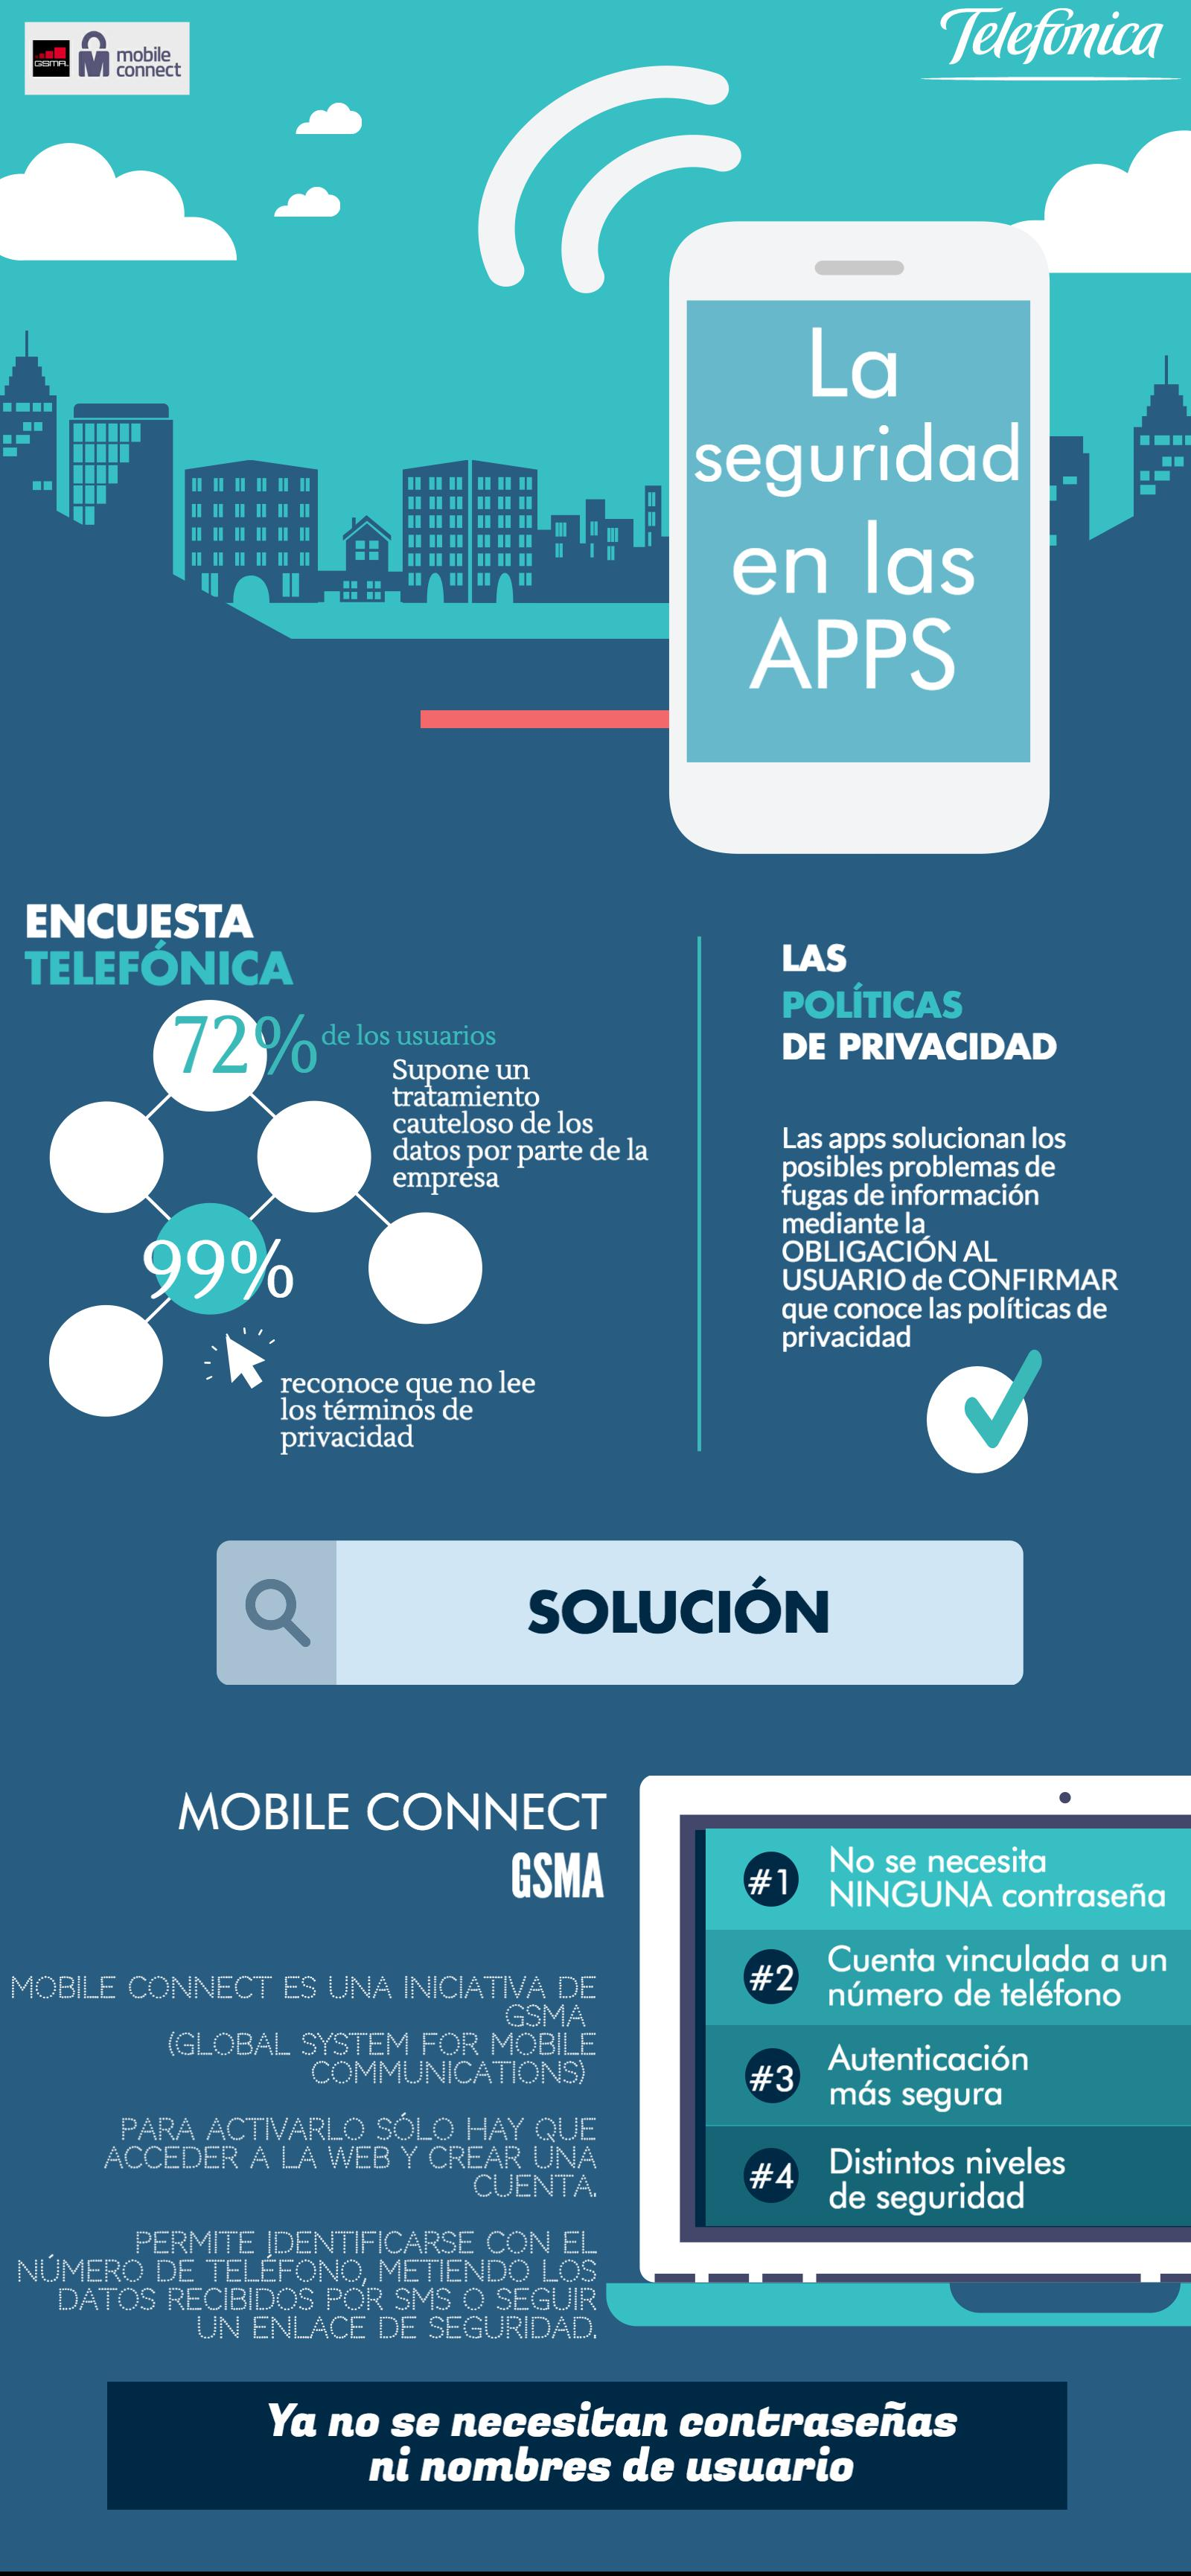 telefonica-mobile-connect-infografia